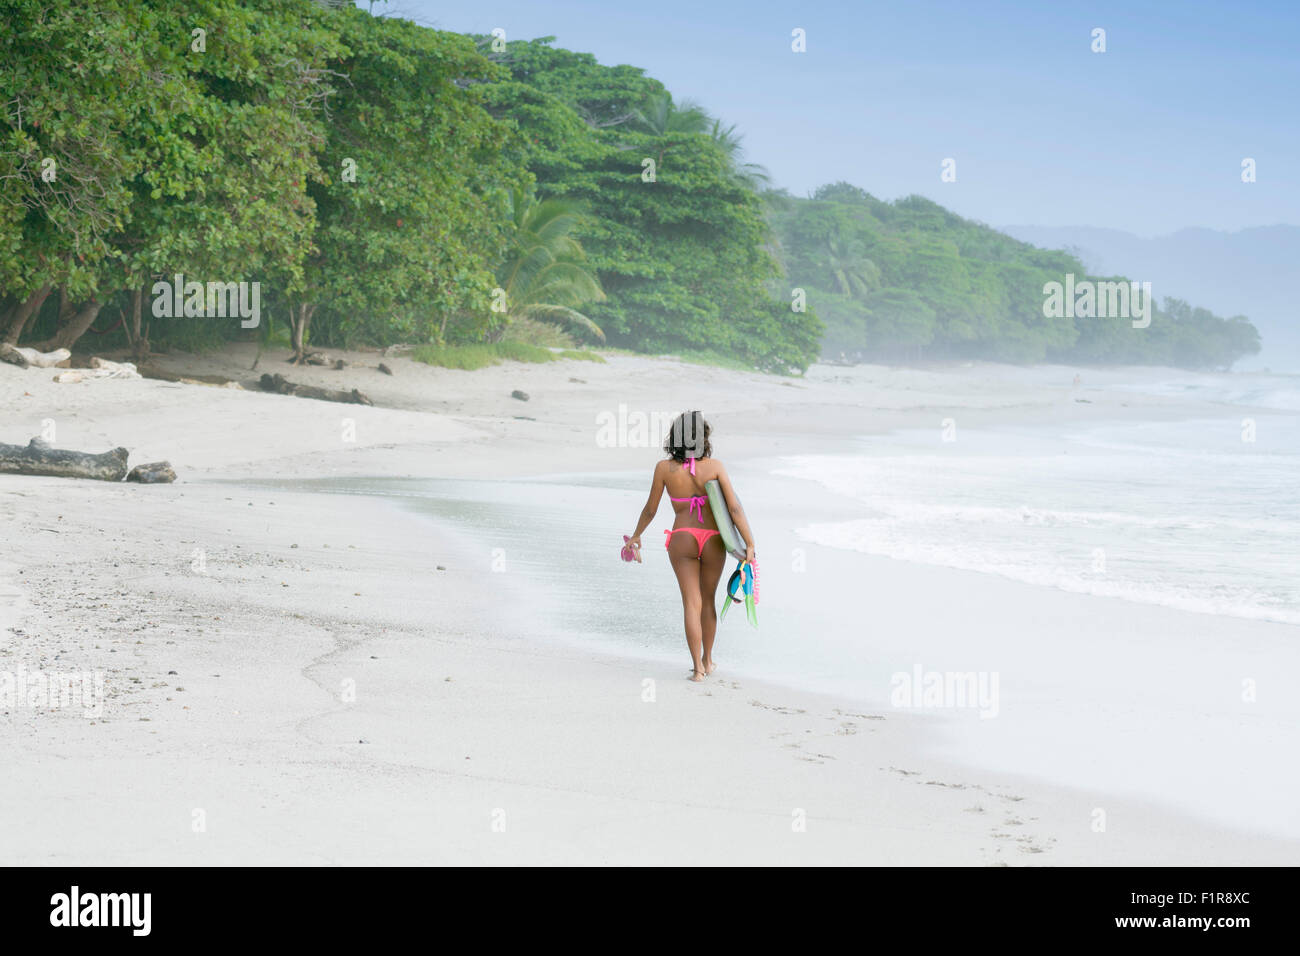 A solo female surfer on a beach in Santa Teresa, Costa Rica, with a body board - Stock Image